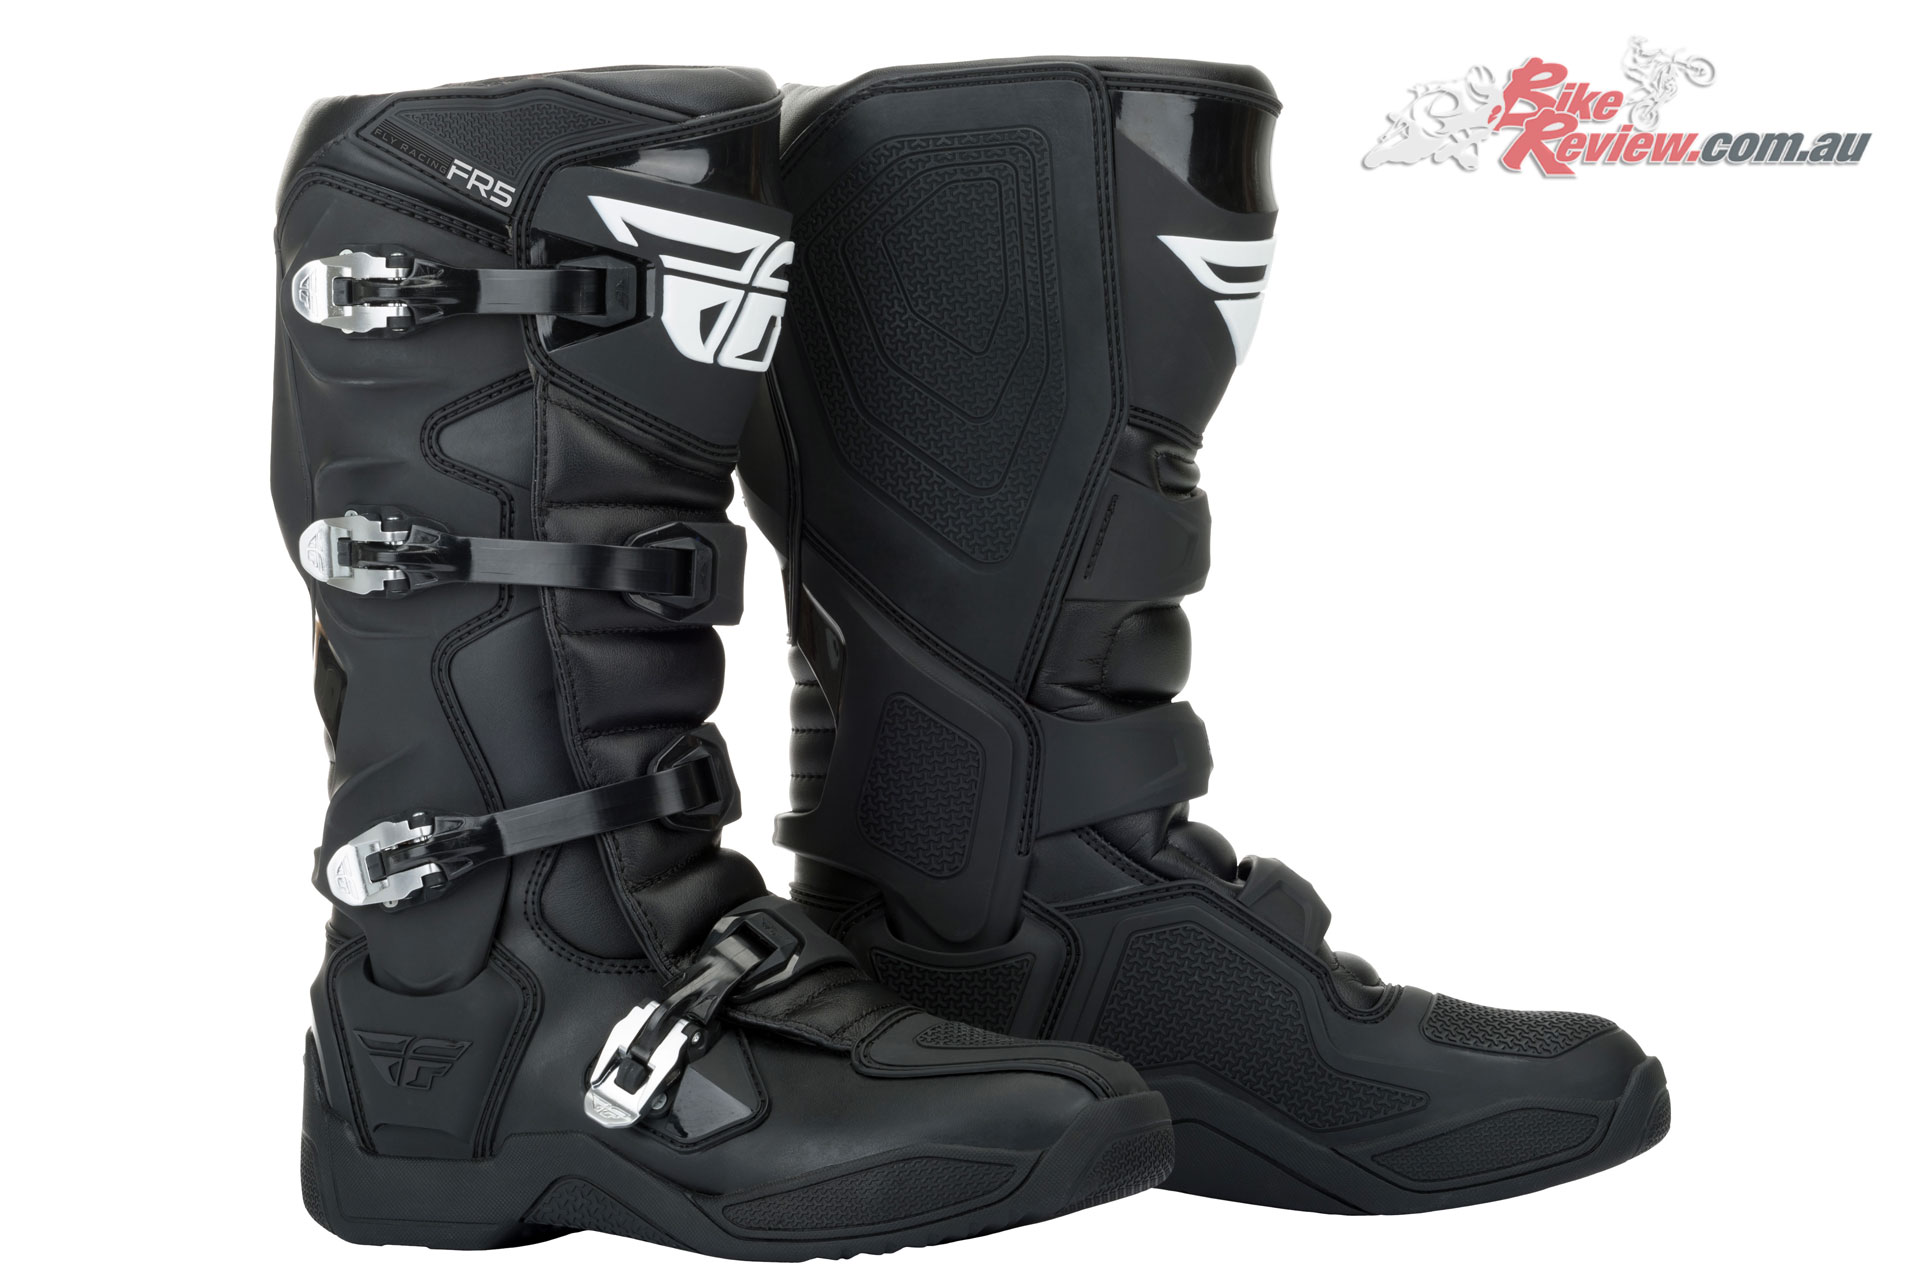 2019 Fly Racing FR-5 Boots